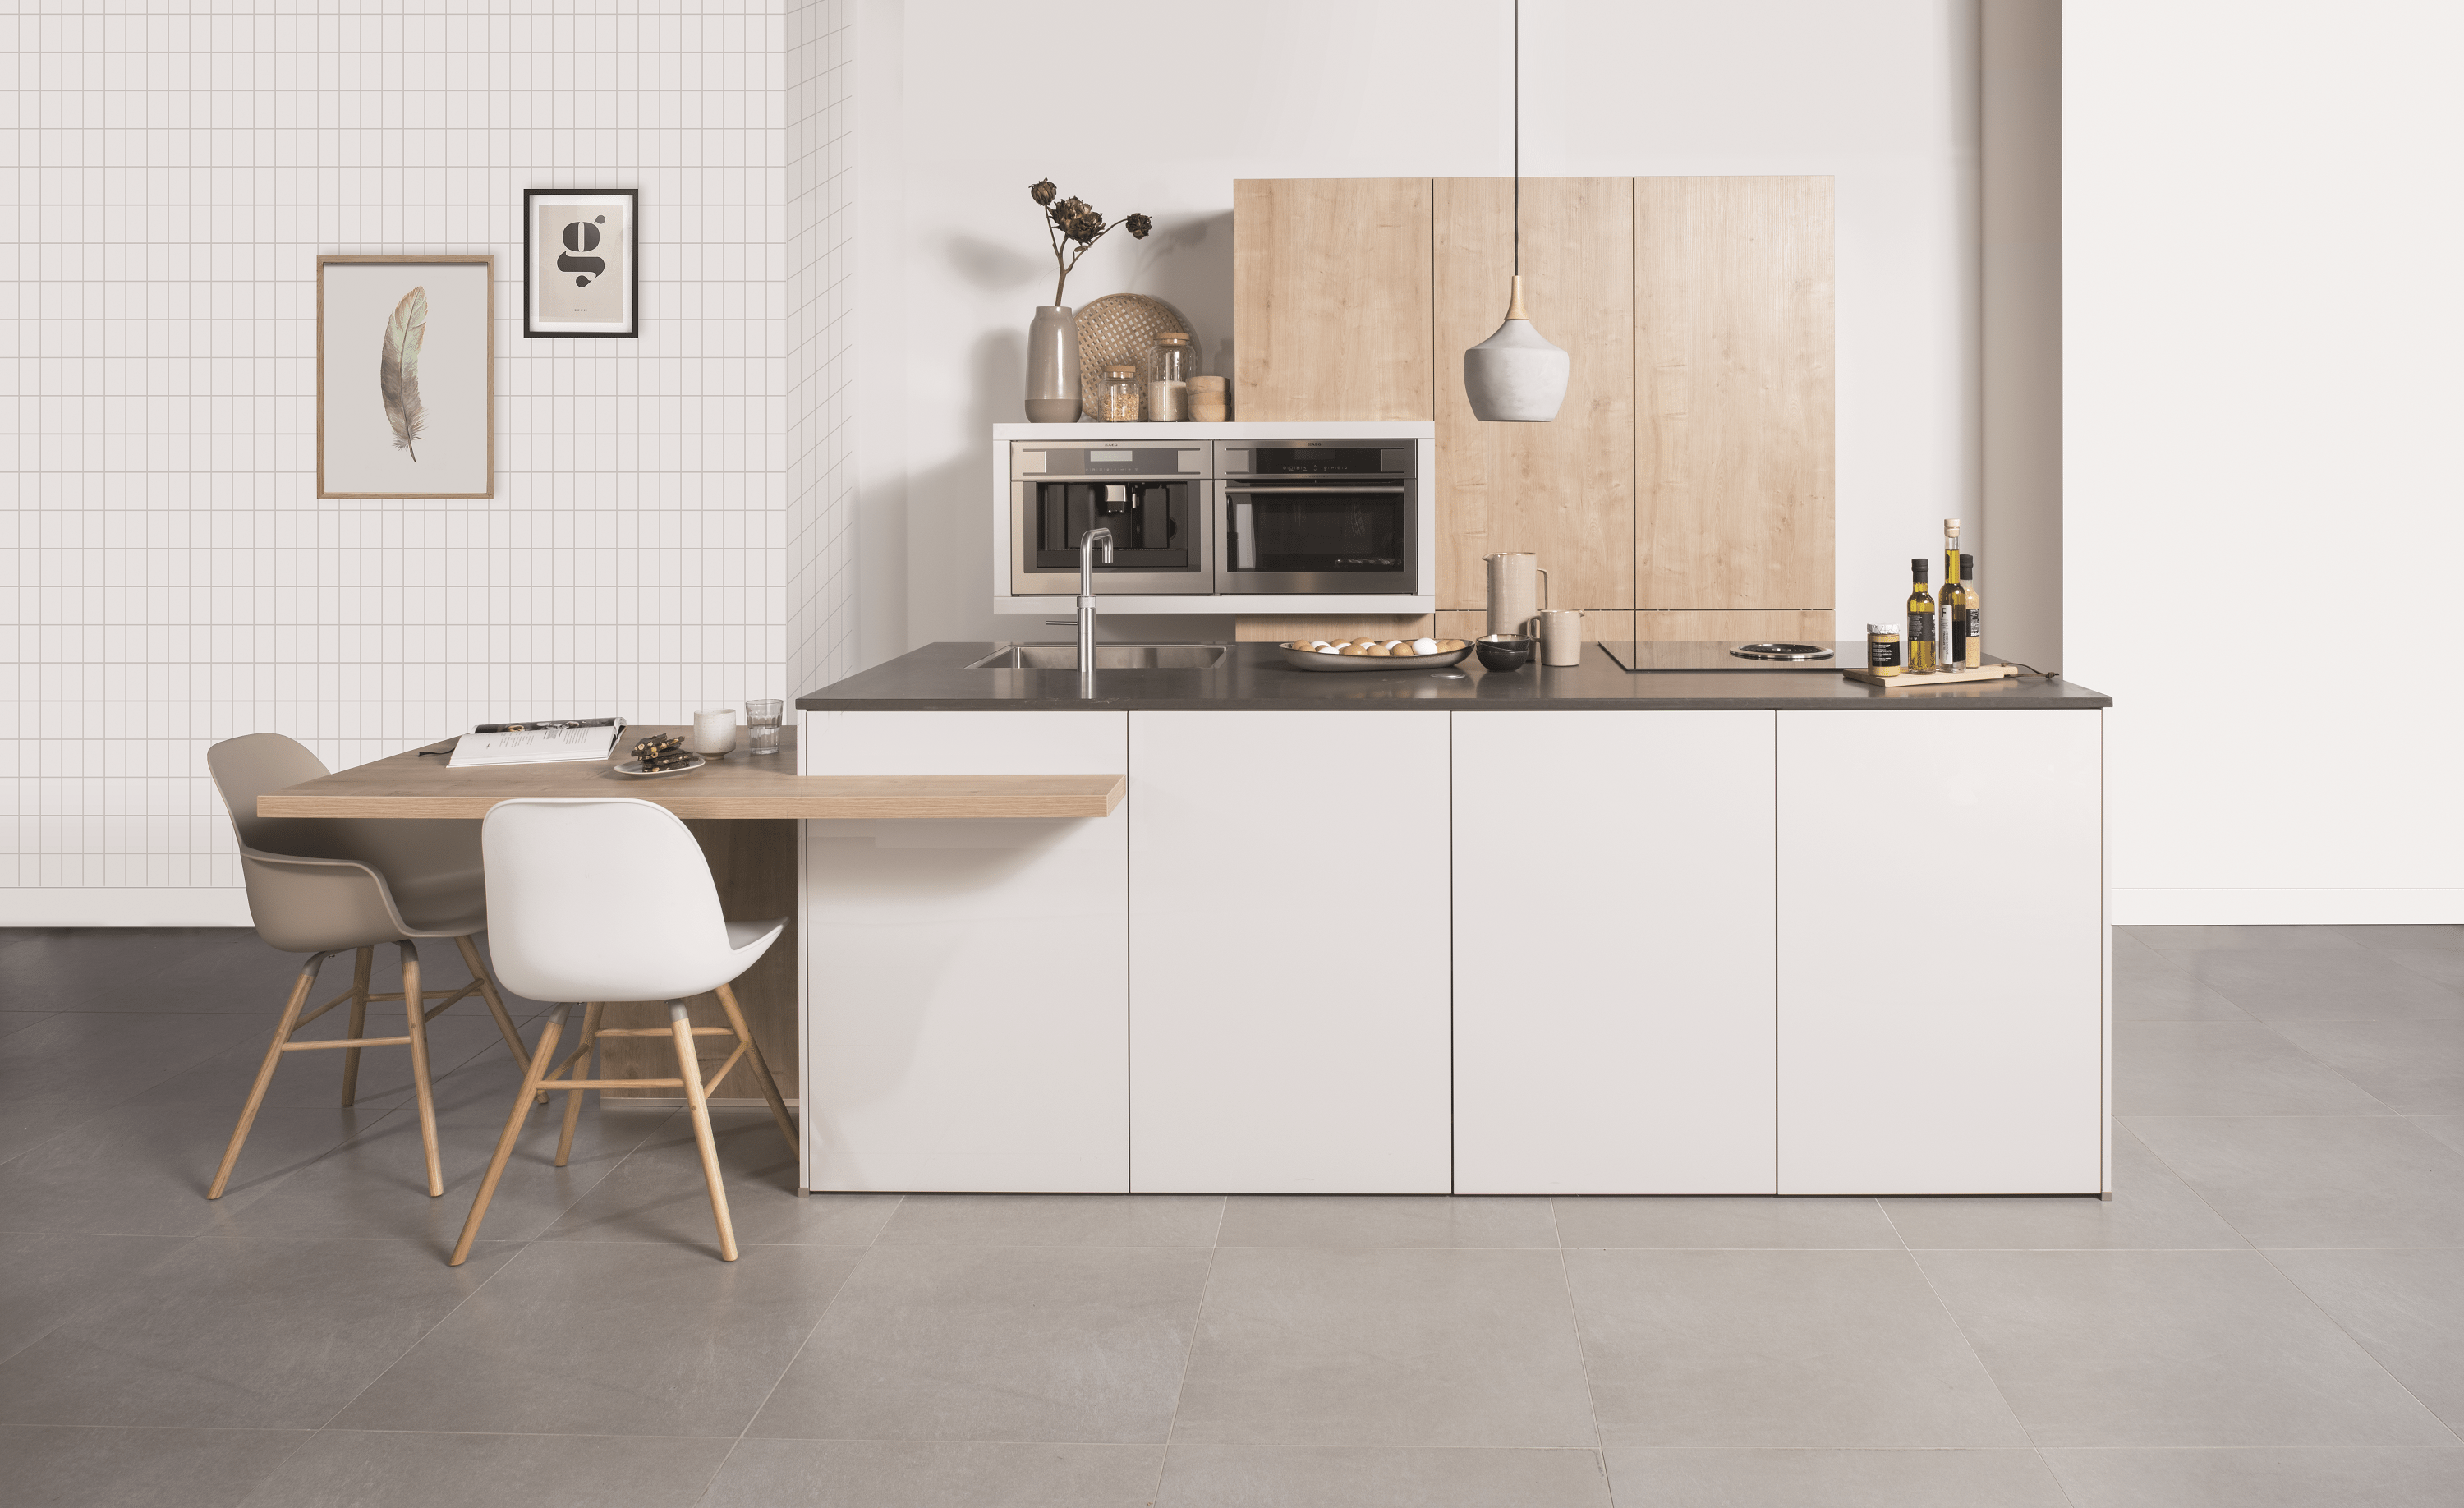 Greeploze design keuken